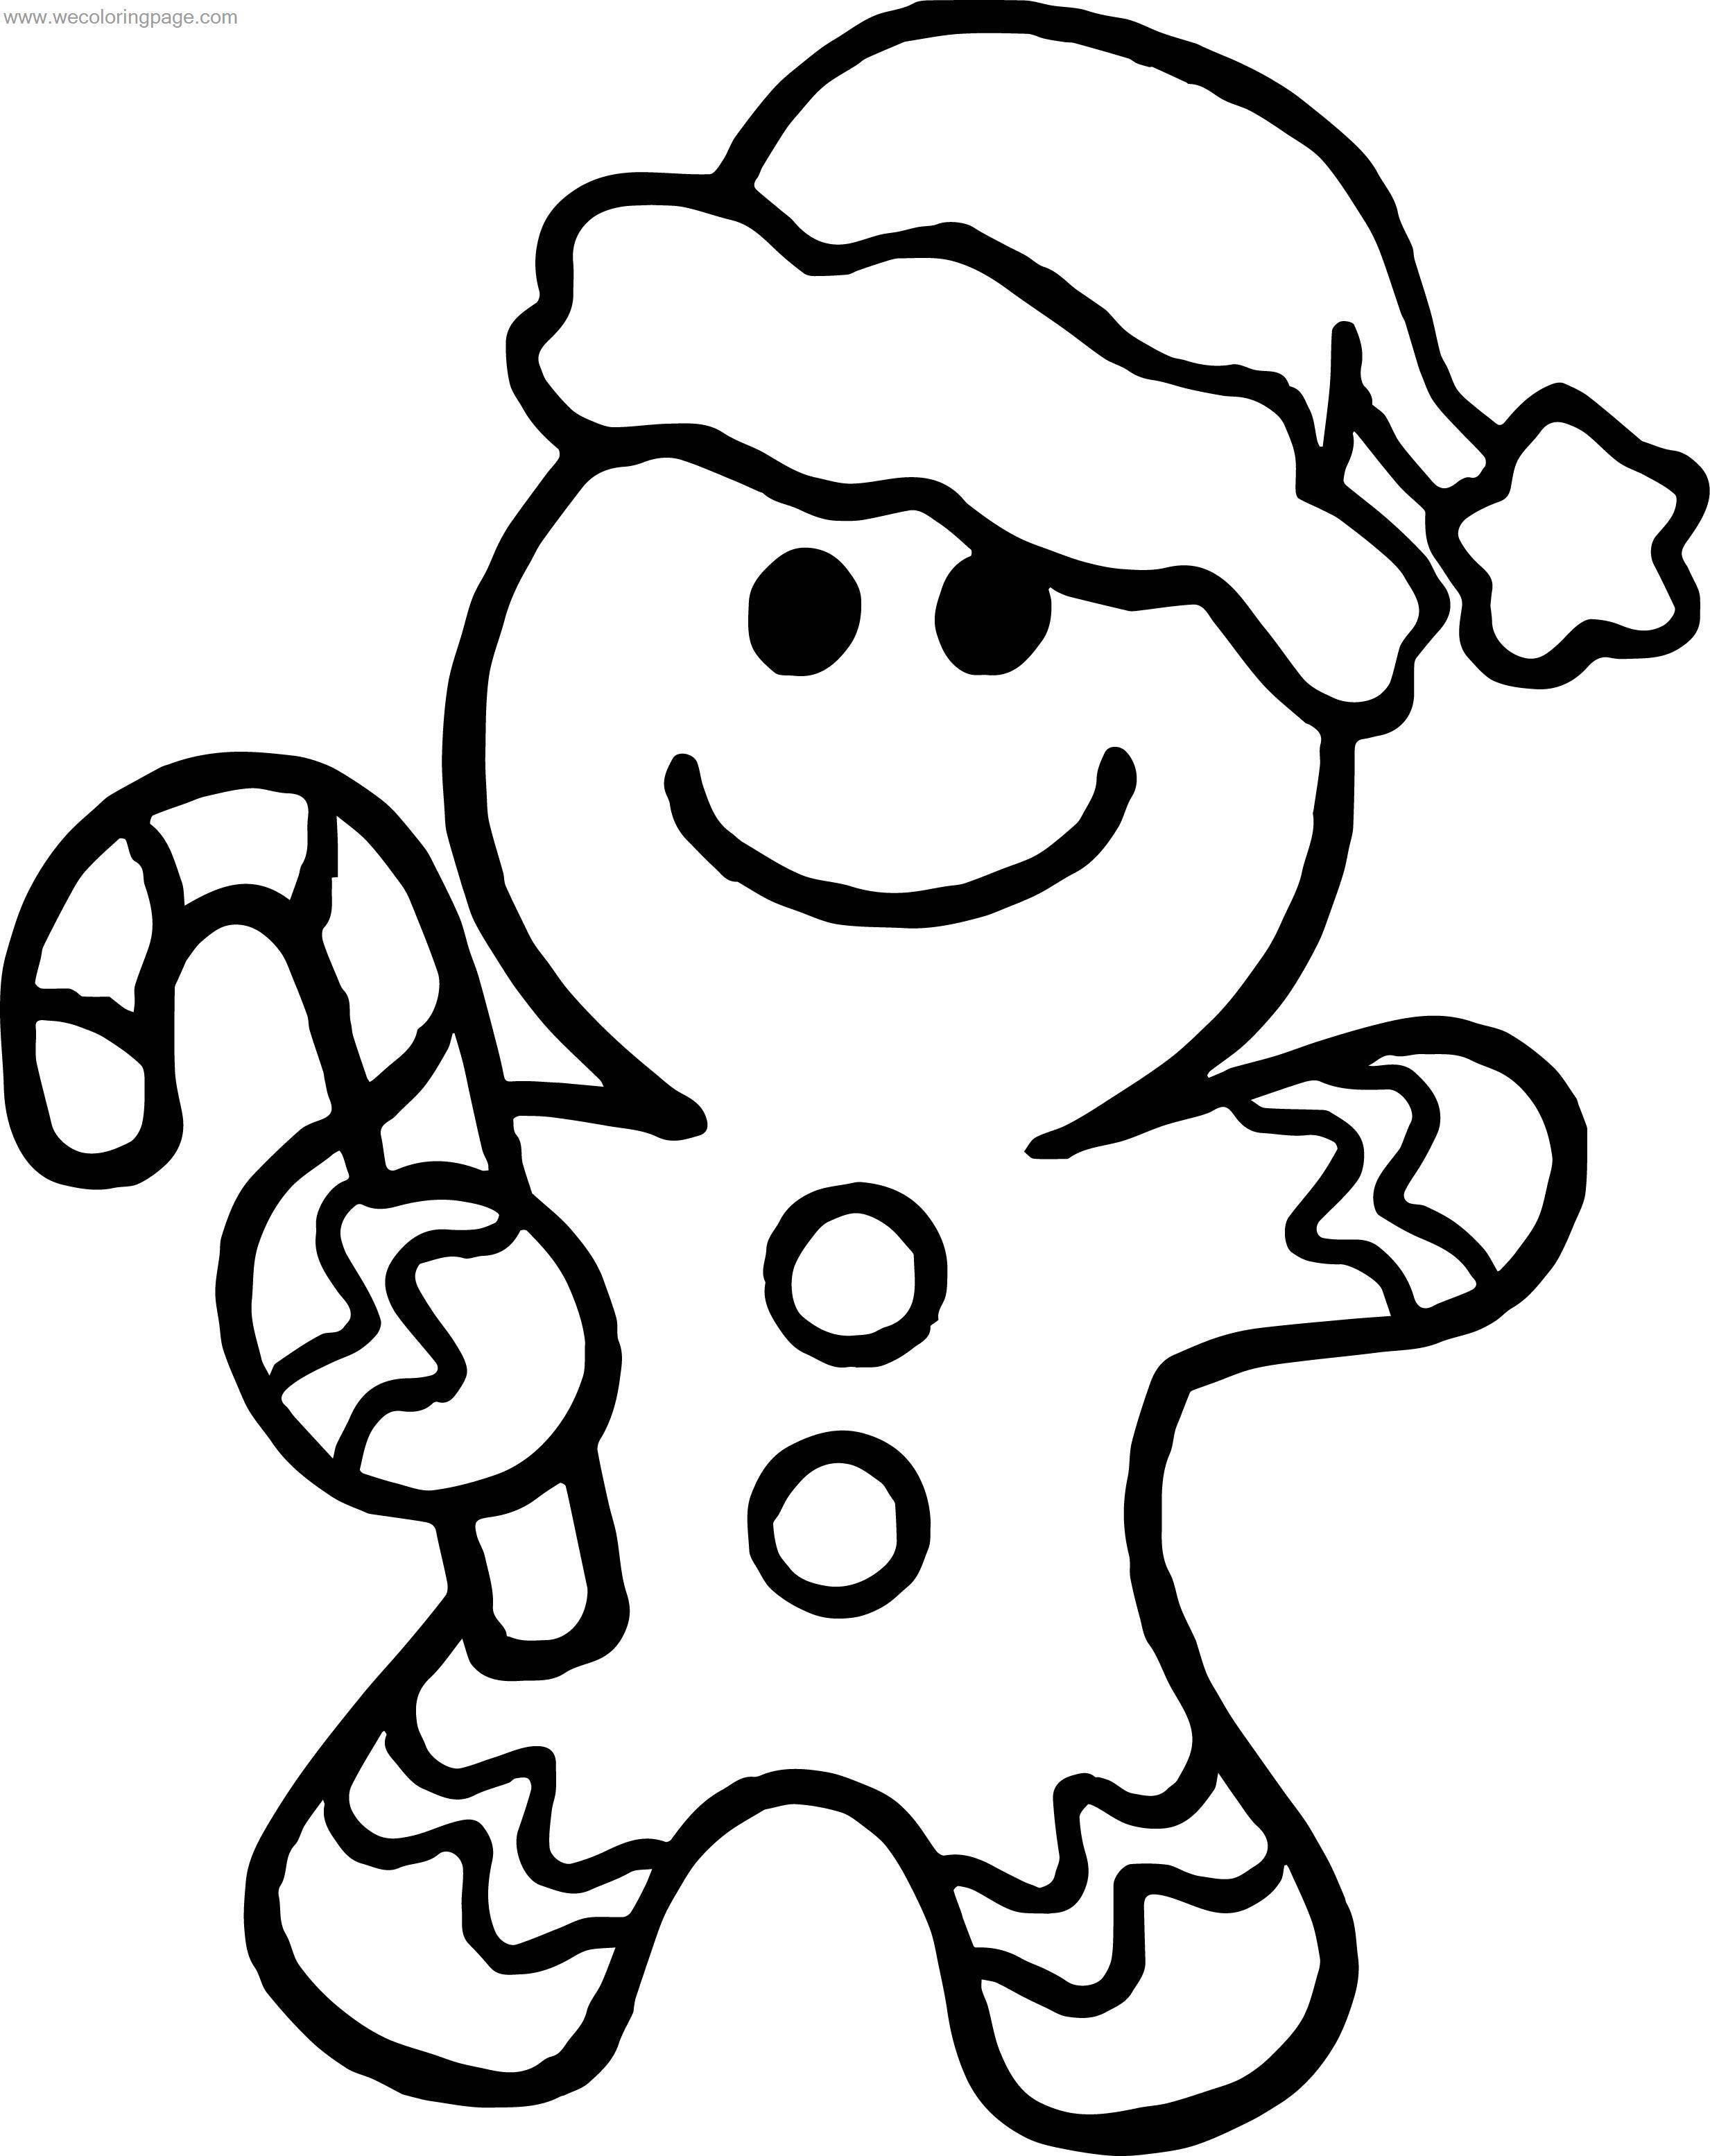 Gingerbread Hello Chrismas Coloring Page